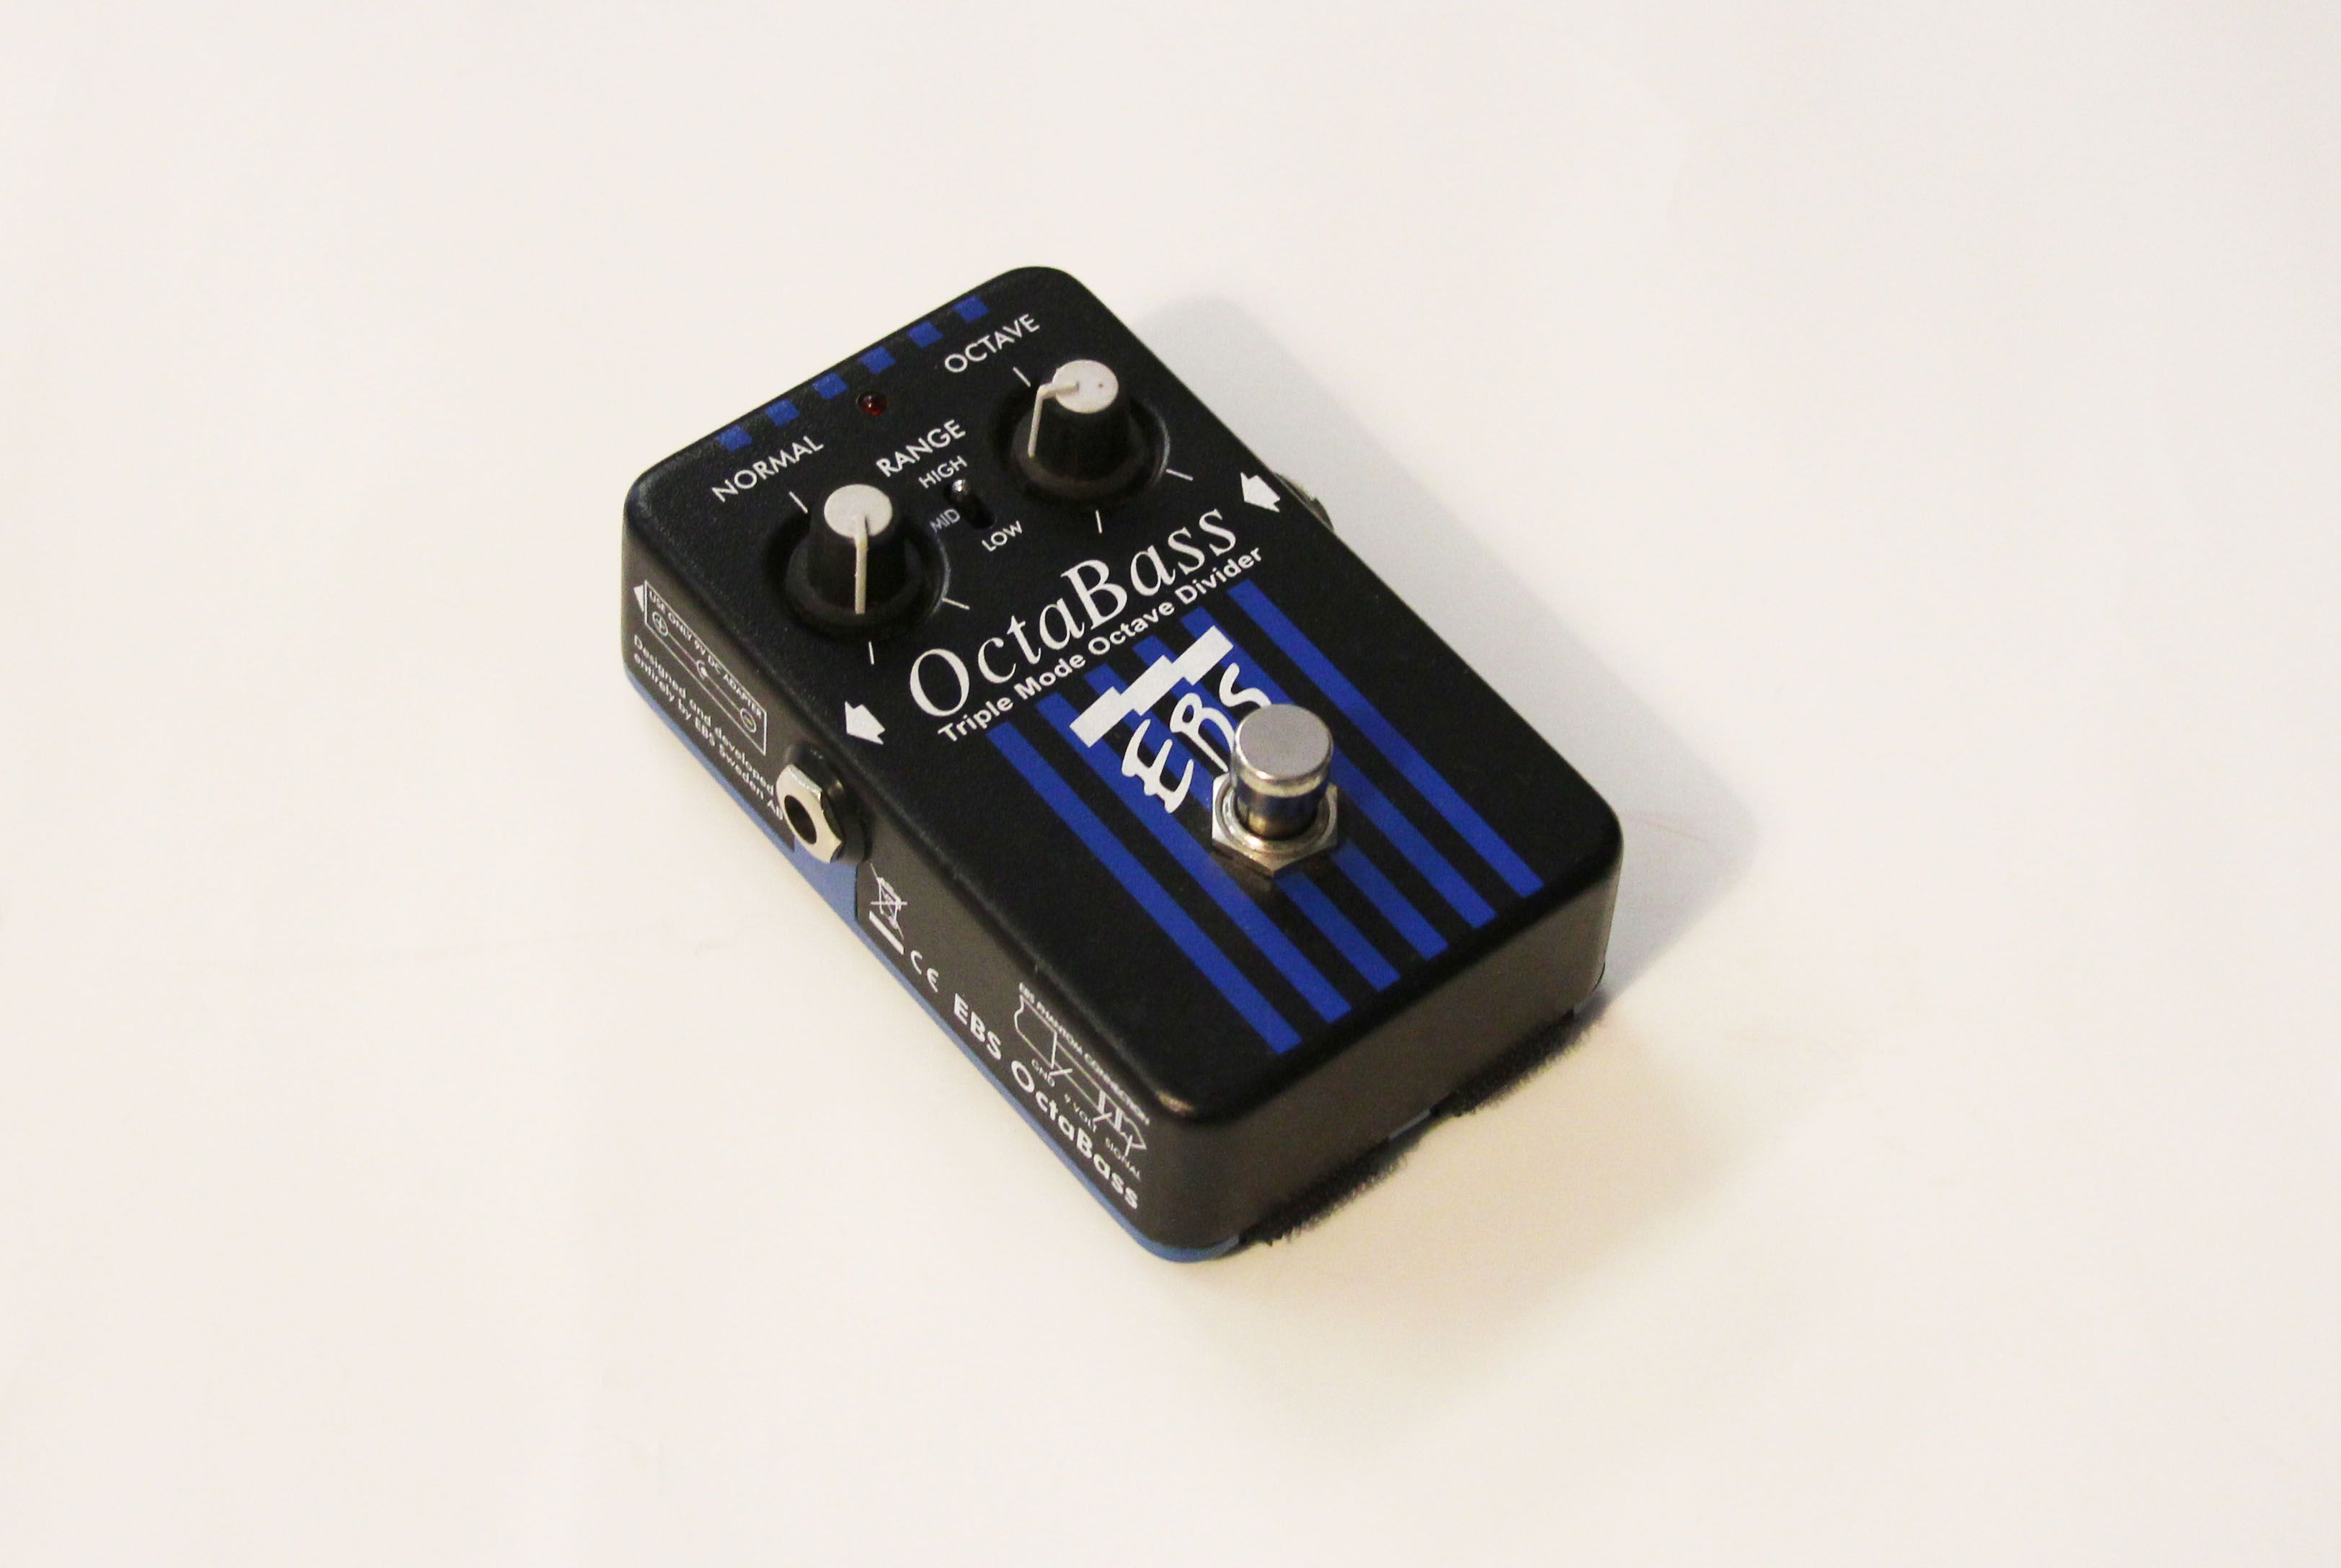 Ebs Octabass 2014 Effect Pedal For Sale Pluton Music